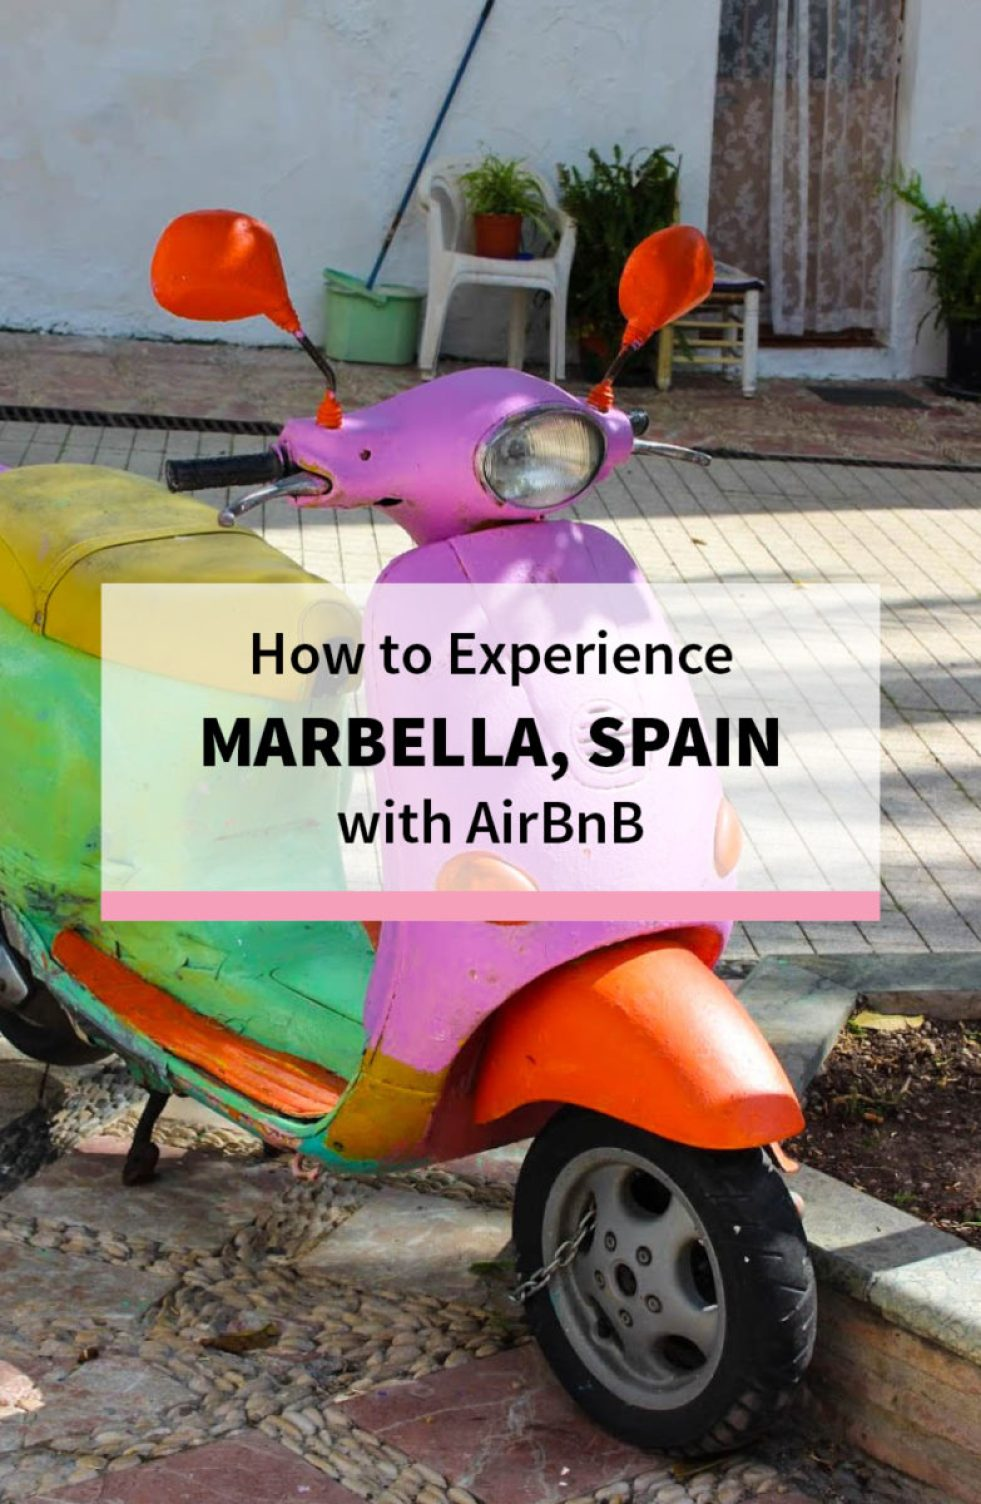 How to Experience Marbella, Spain with AirBnB - What to Do, Where to Go, What to Eat